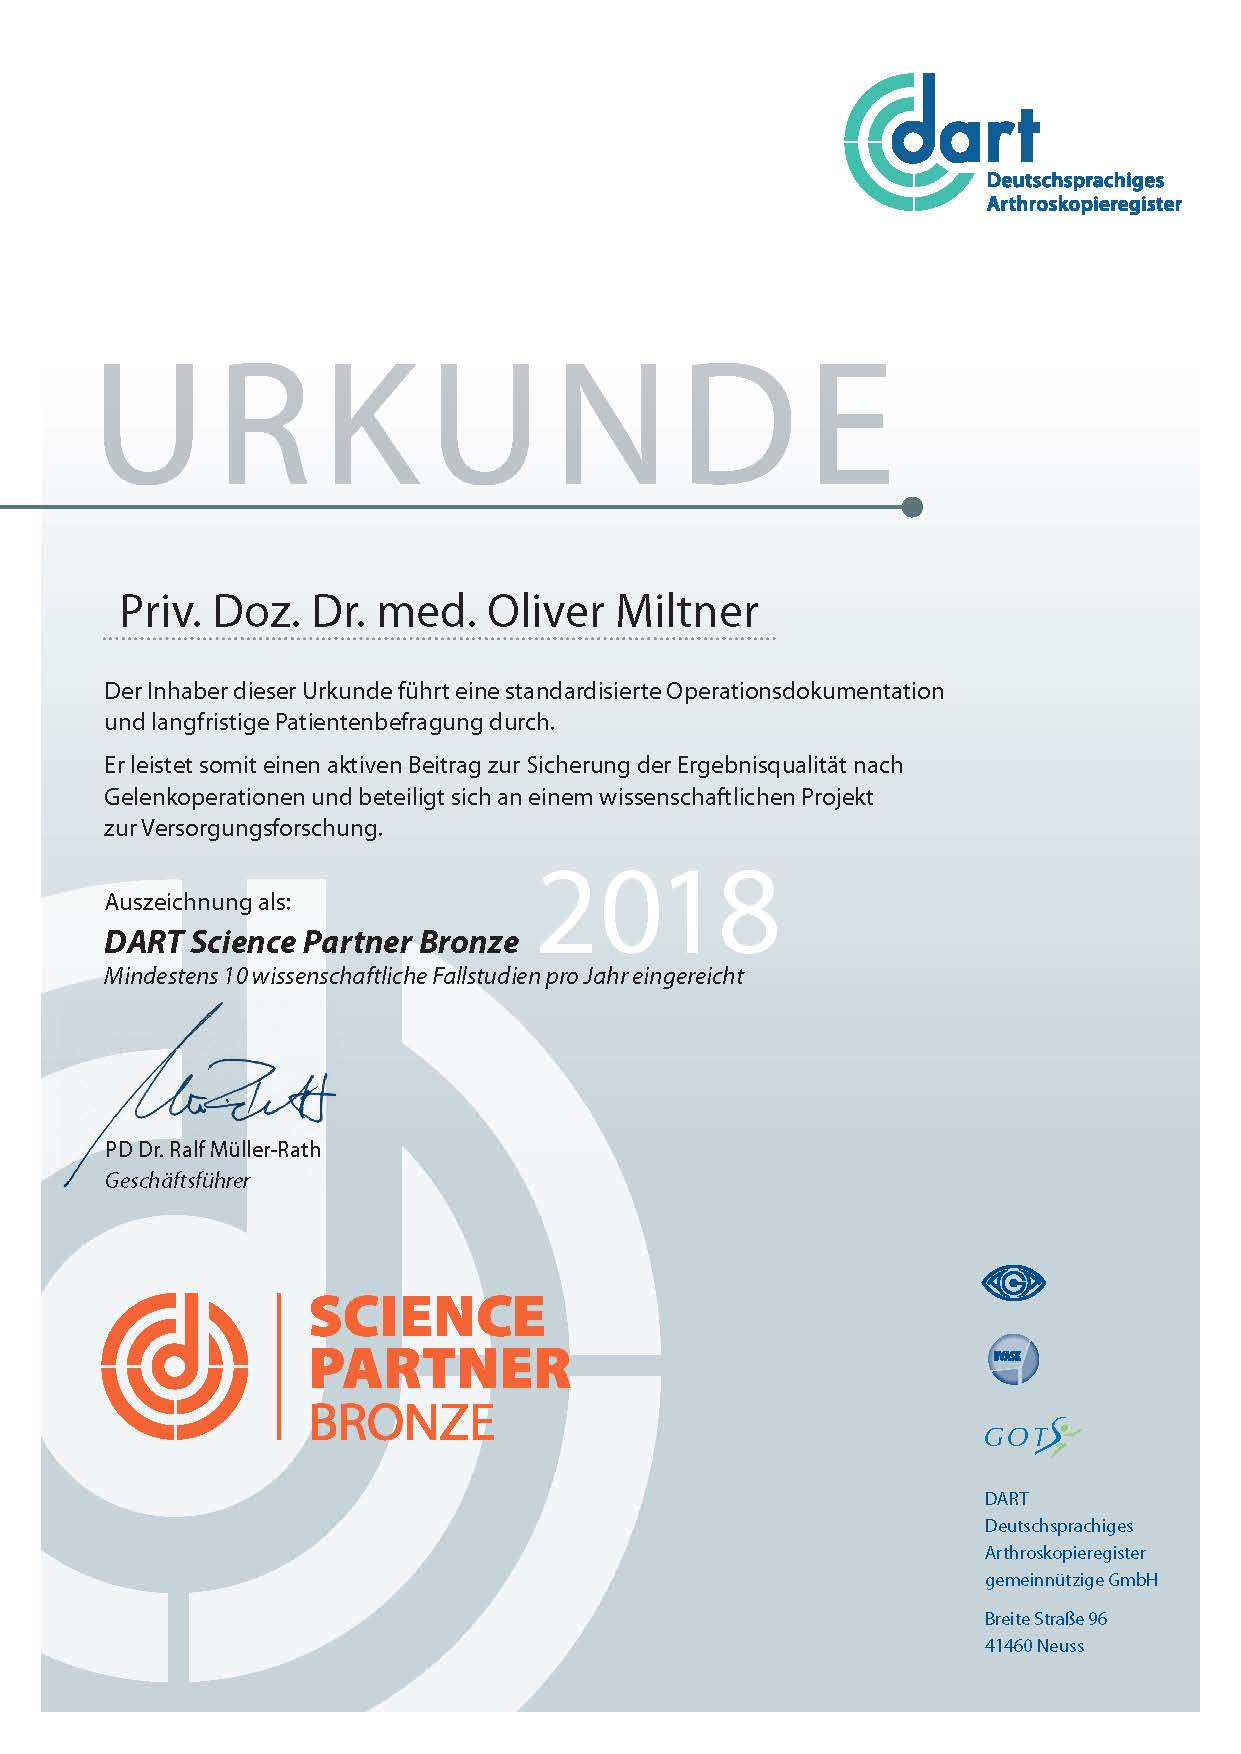 Science Partner 2018